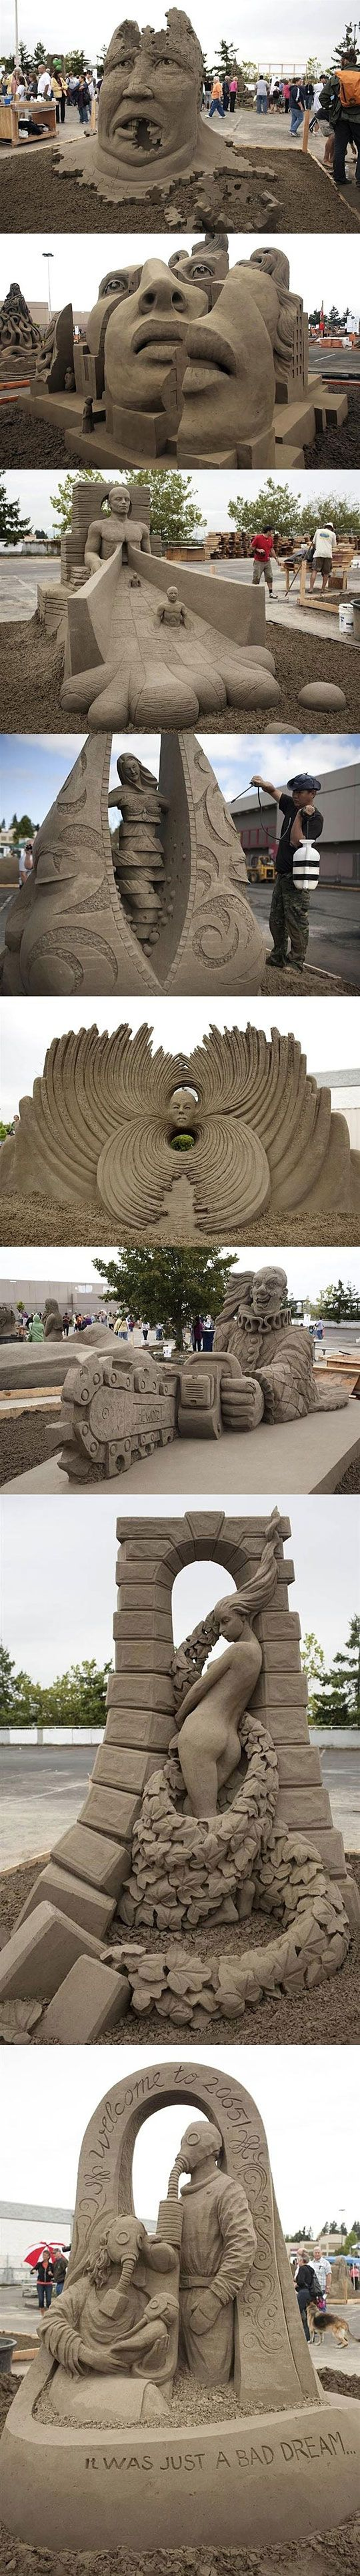 World Championship of Sand Sculpting. This is so inspirational. I want to attend some day.